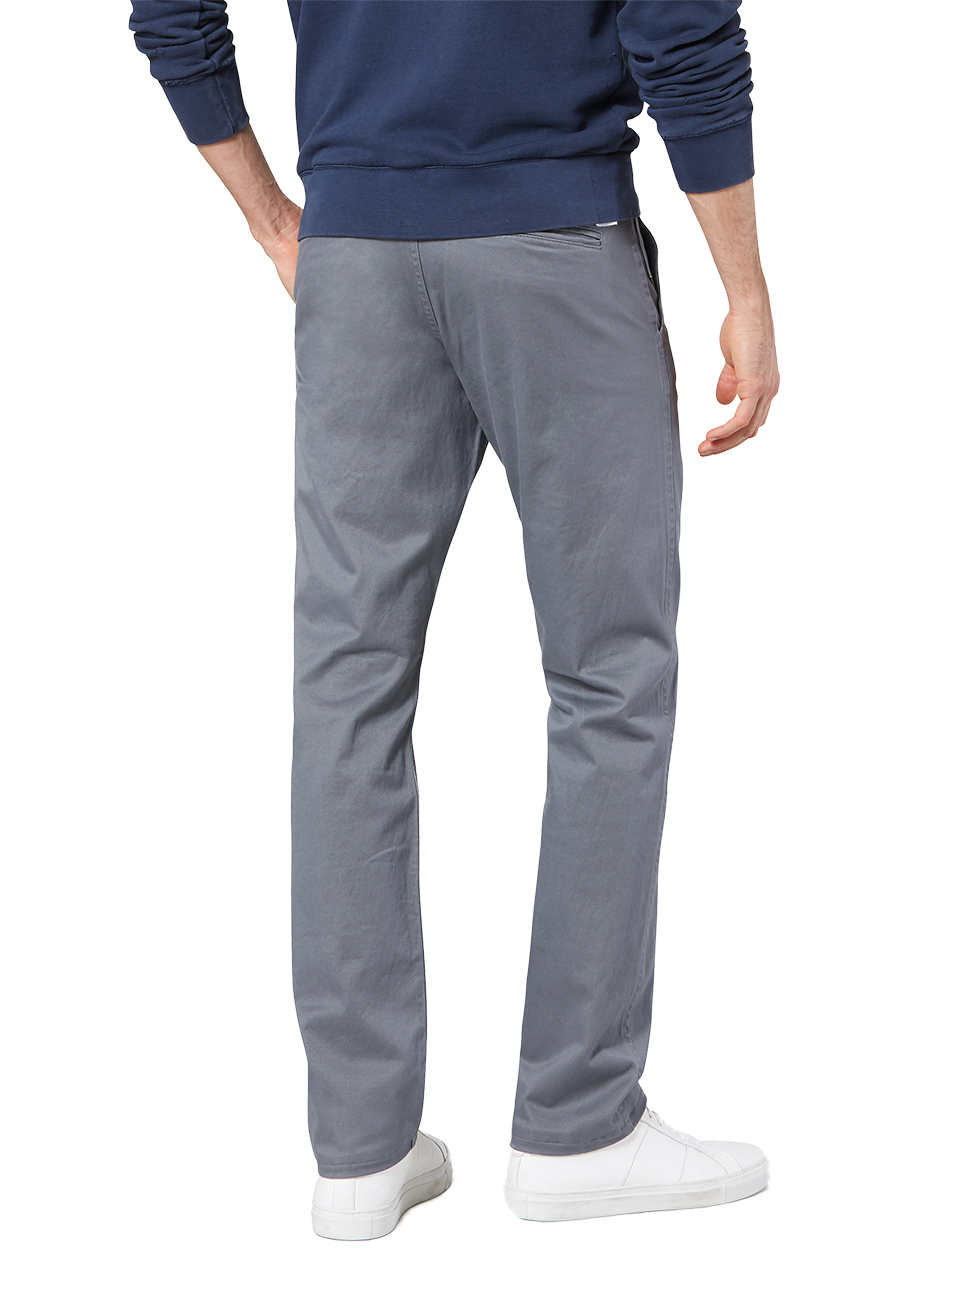 Dockers Chino Hose Alpha Original Khaki - Slim Tapered Fit - viele Farben